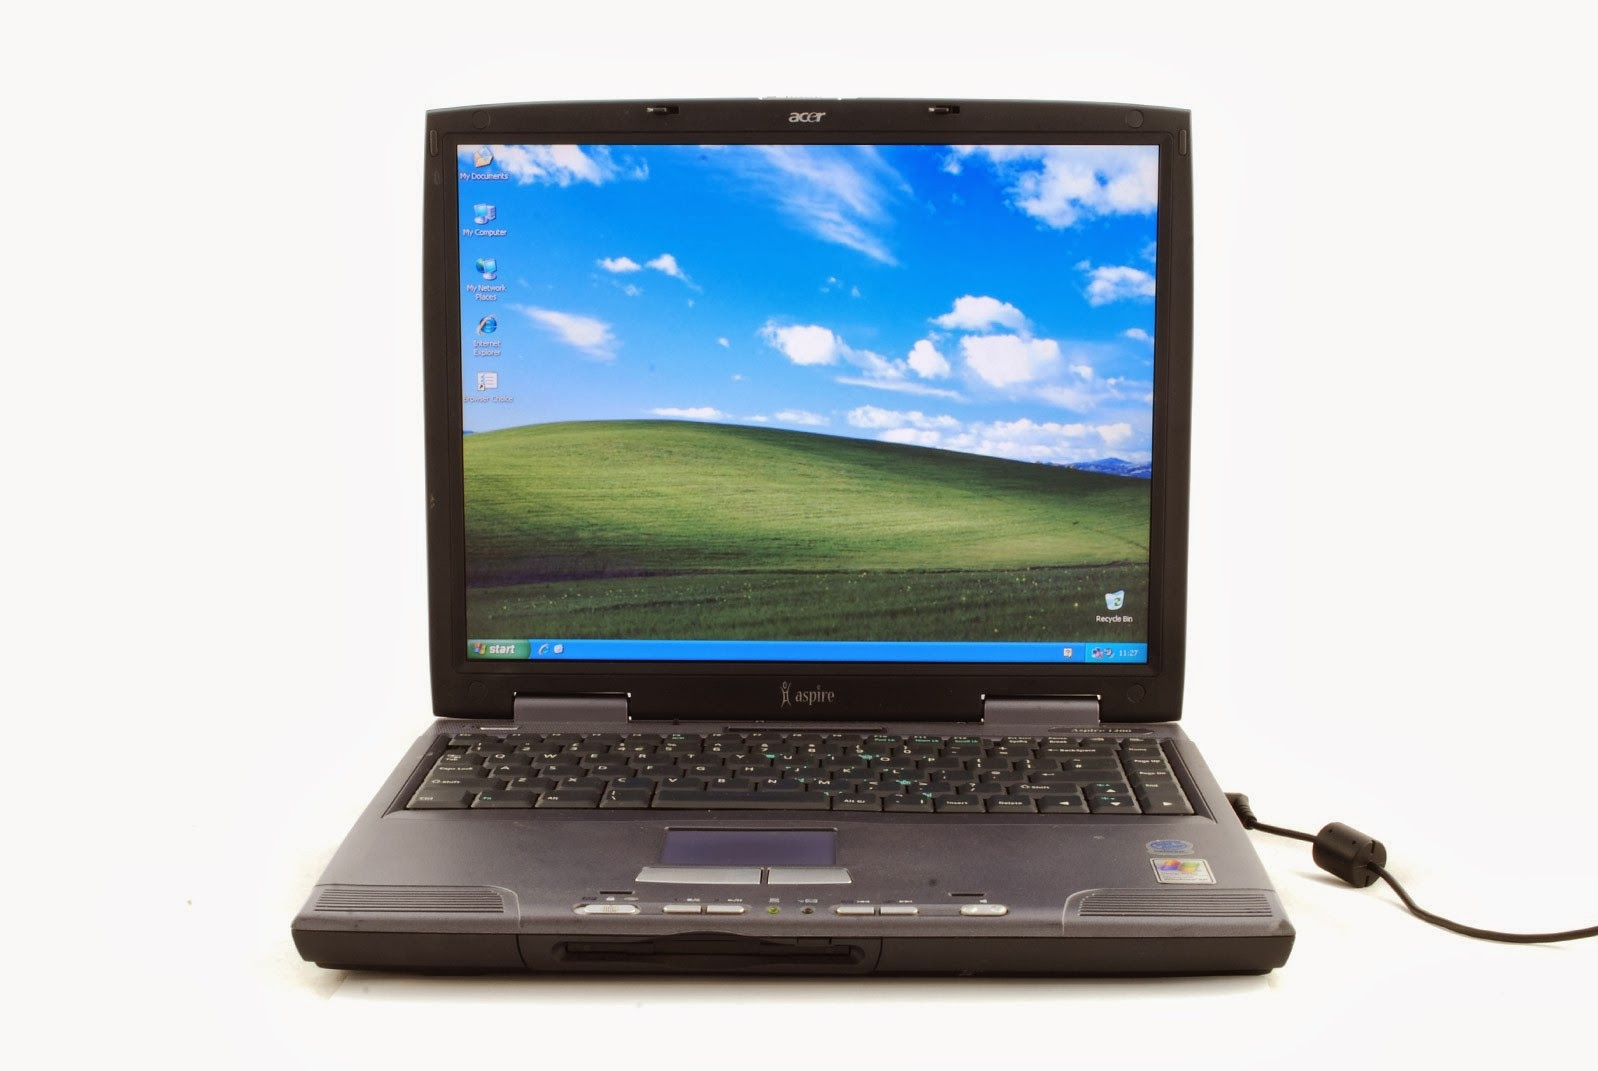 ACER ASPIRE 1200 WINDOWS 8 DRIVER DOWNLOAD